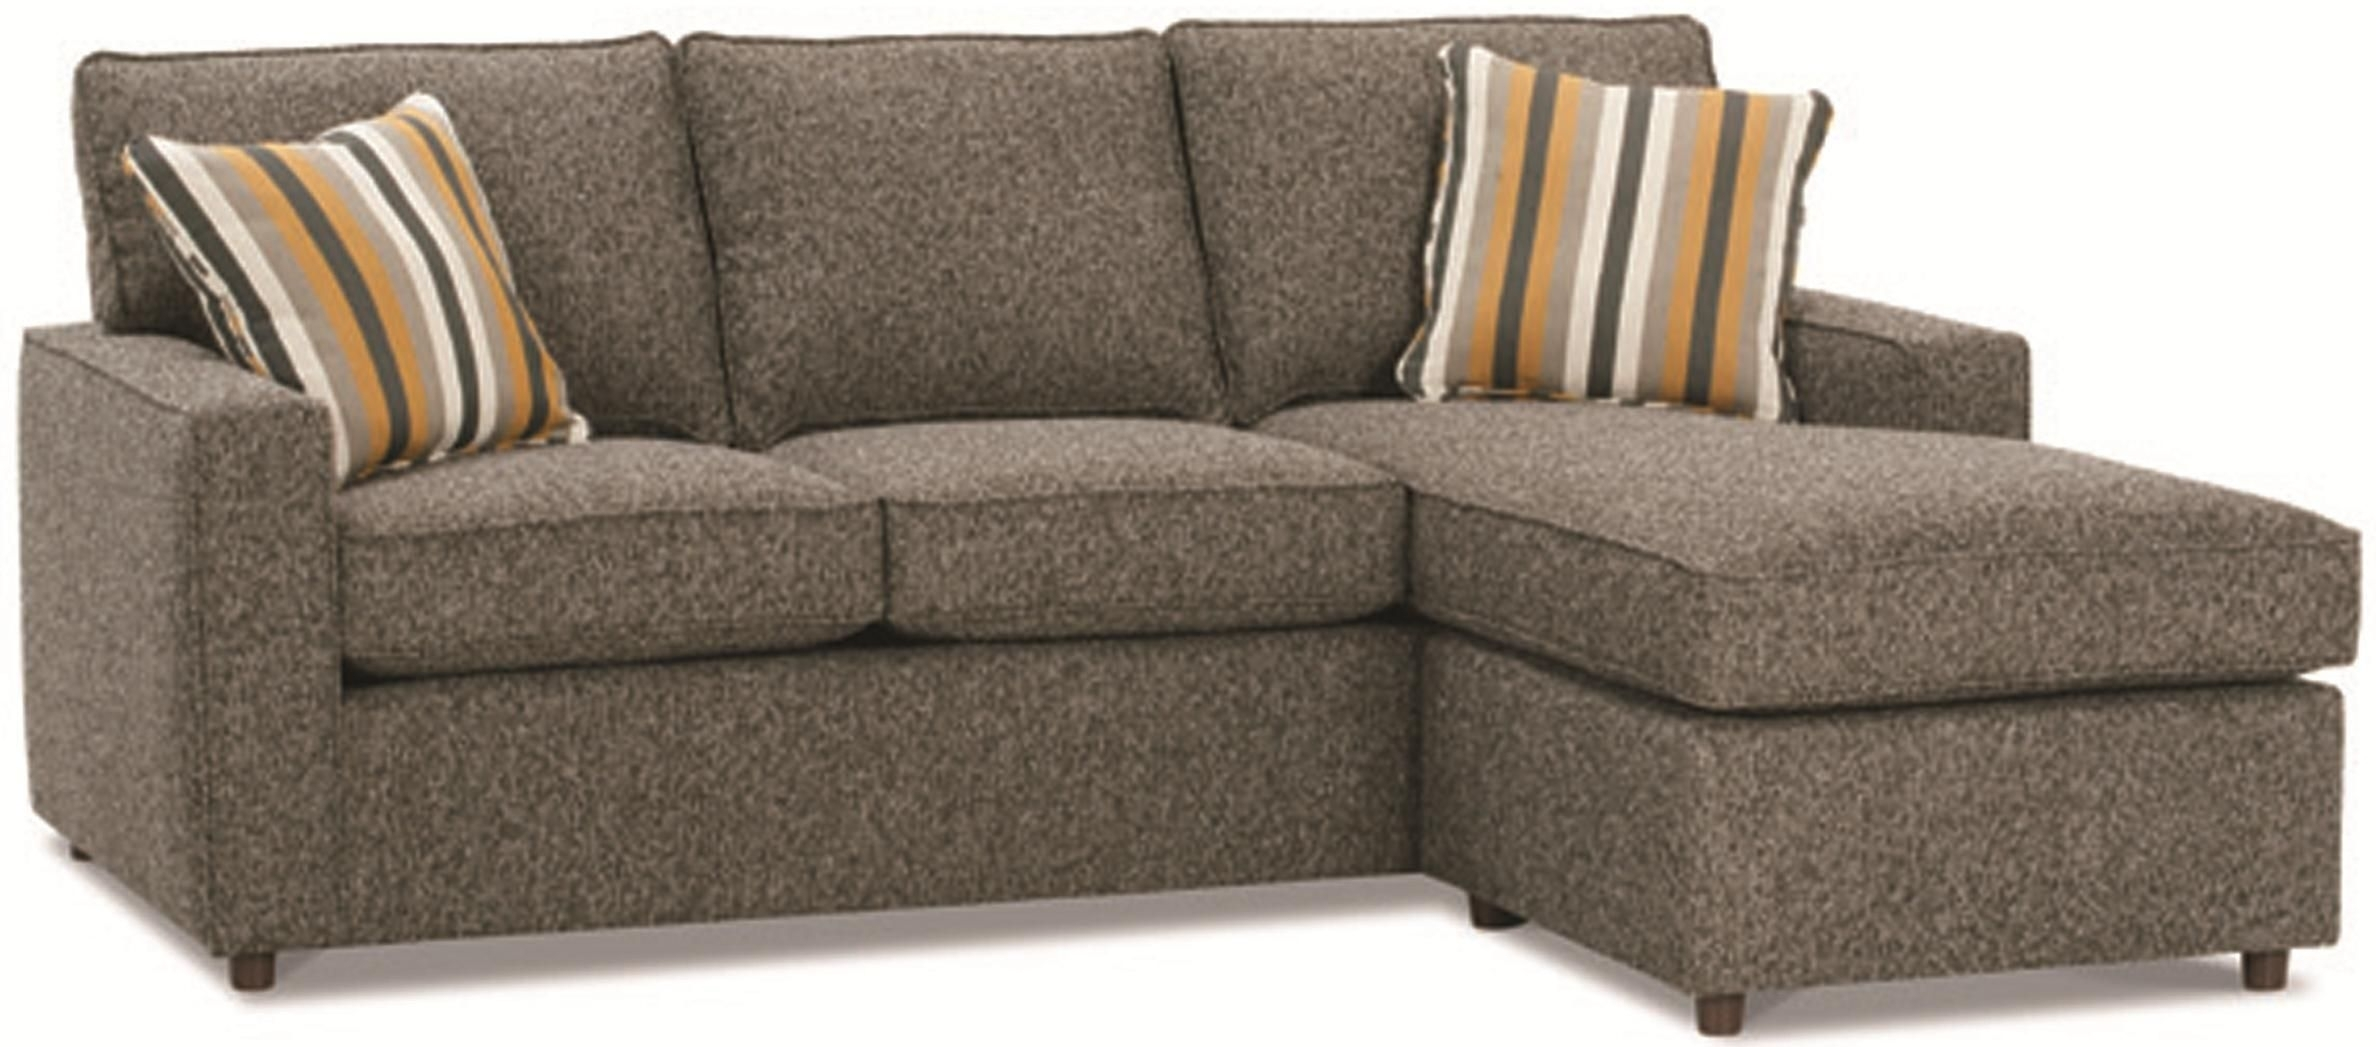 Monaco Contemporary Sofa With Reversible Chaise Ottomanrowe Pertaining To Minneapolis Sectional Sofas (View 7 of 10)